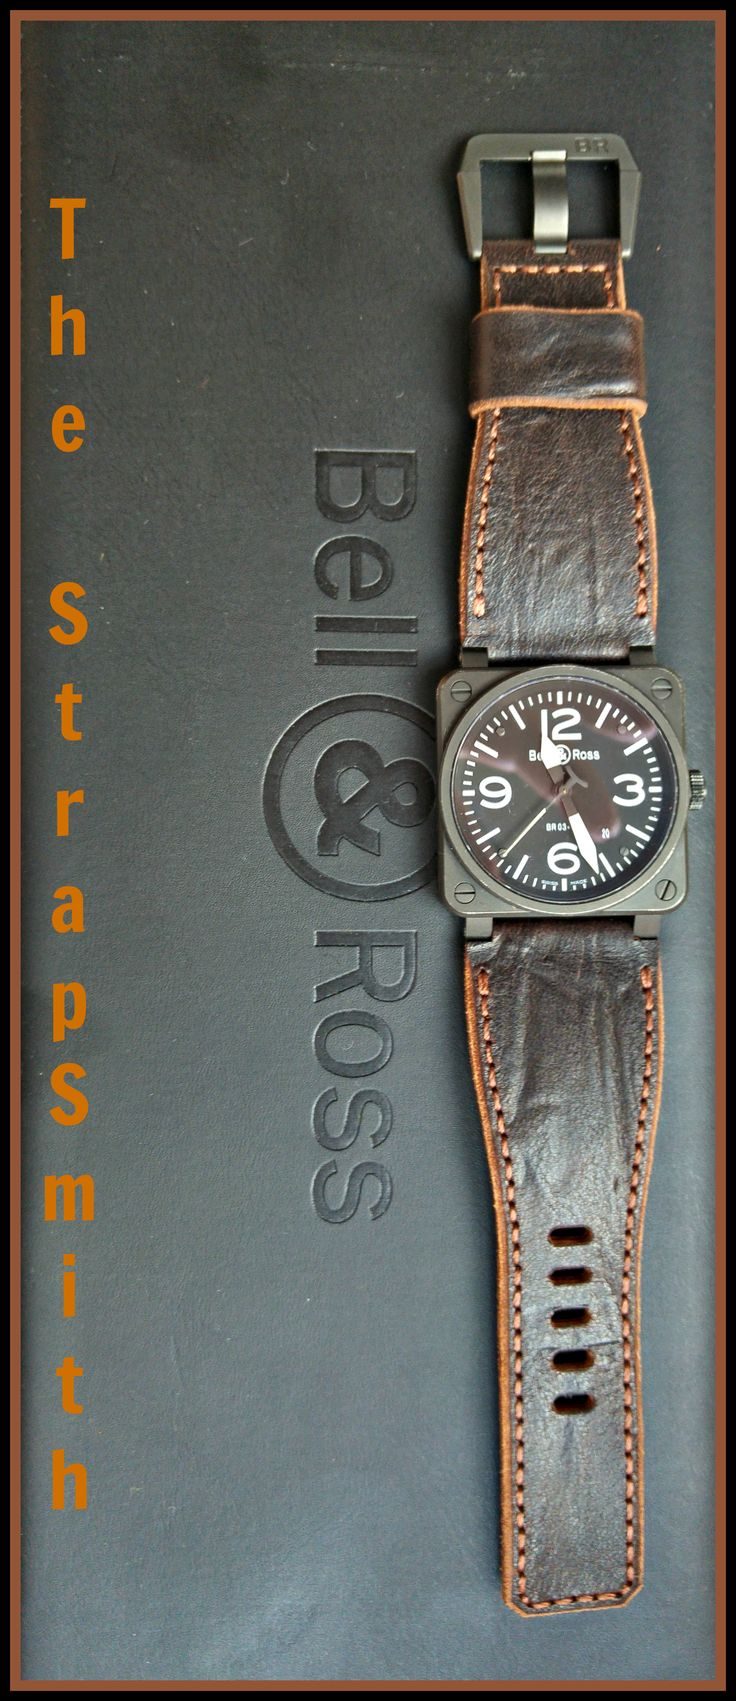 Dark Chocolate looking good on the Bell & Ross! TheStrapSmith.com